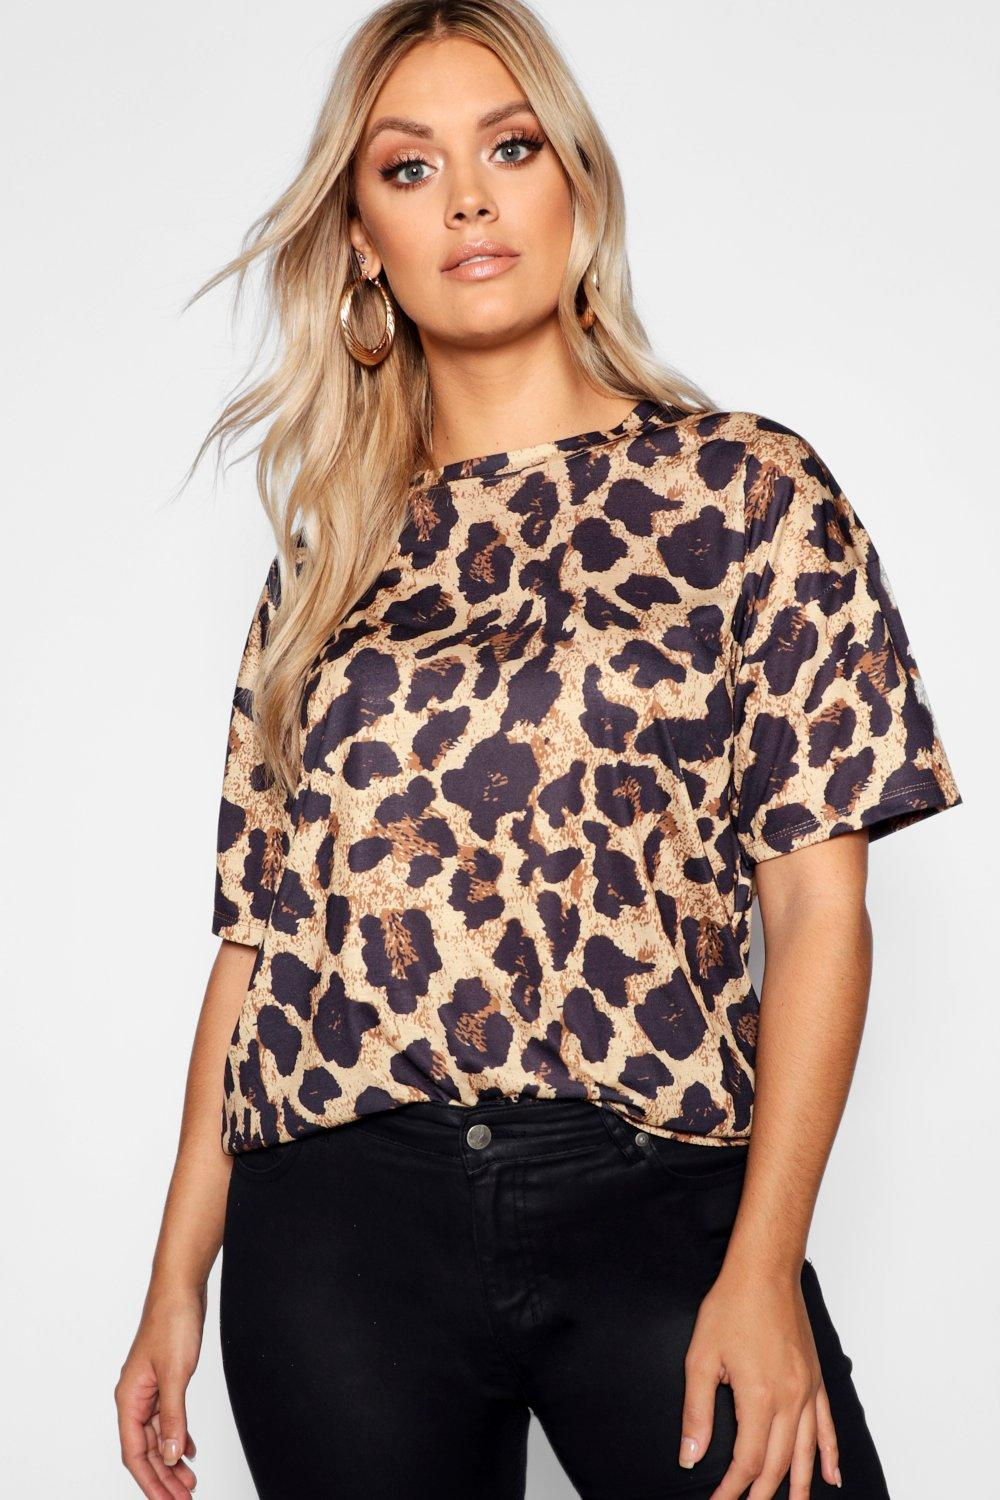 19d7b5e3b1 ... Leopard Print Oversized T-Shirt. Hover to zoom